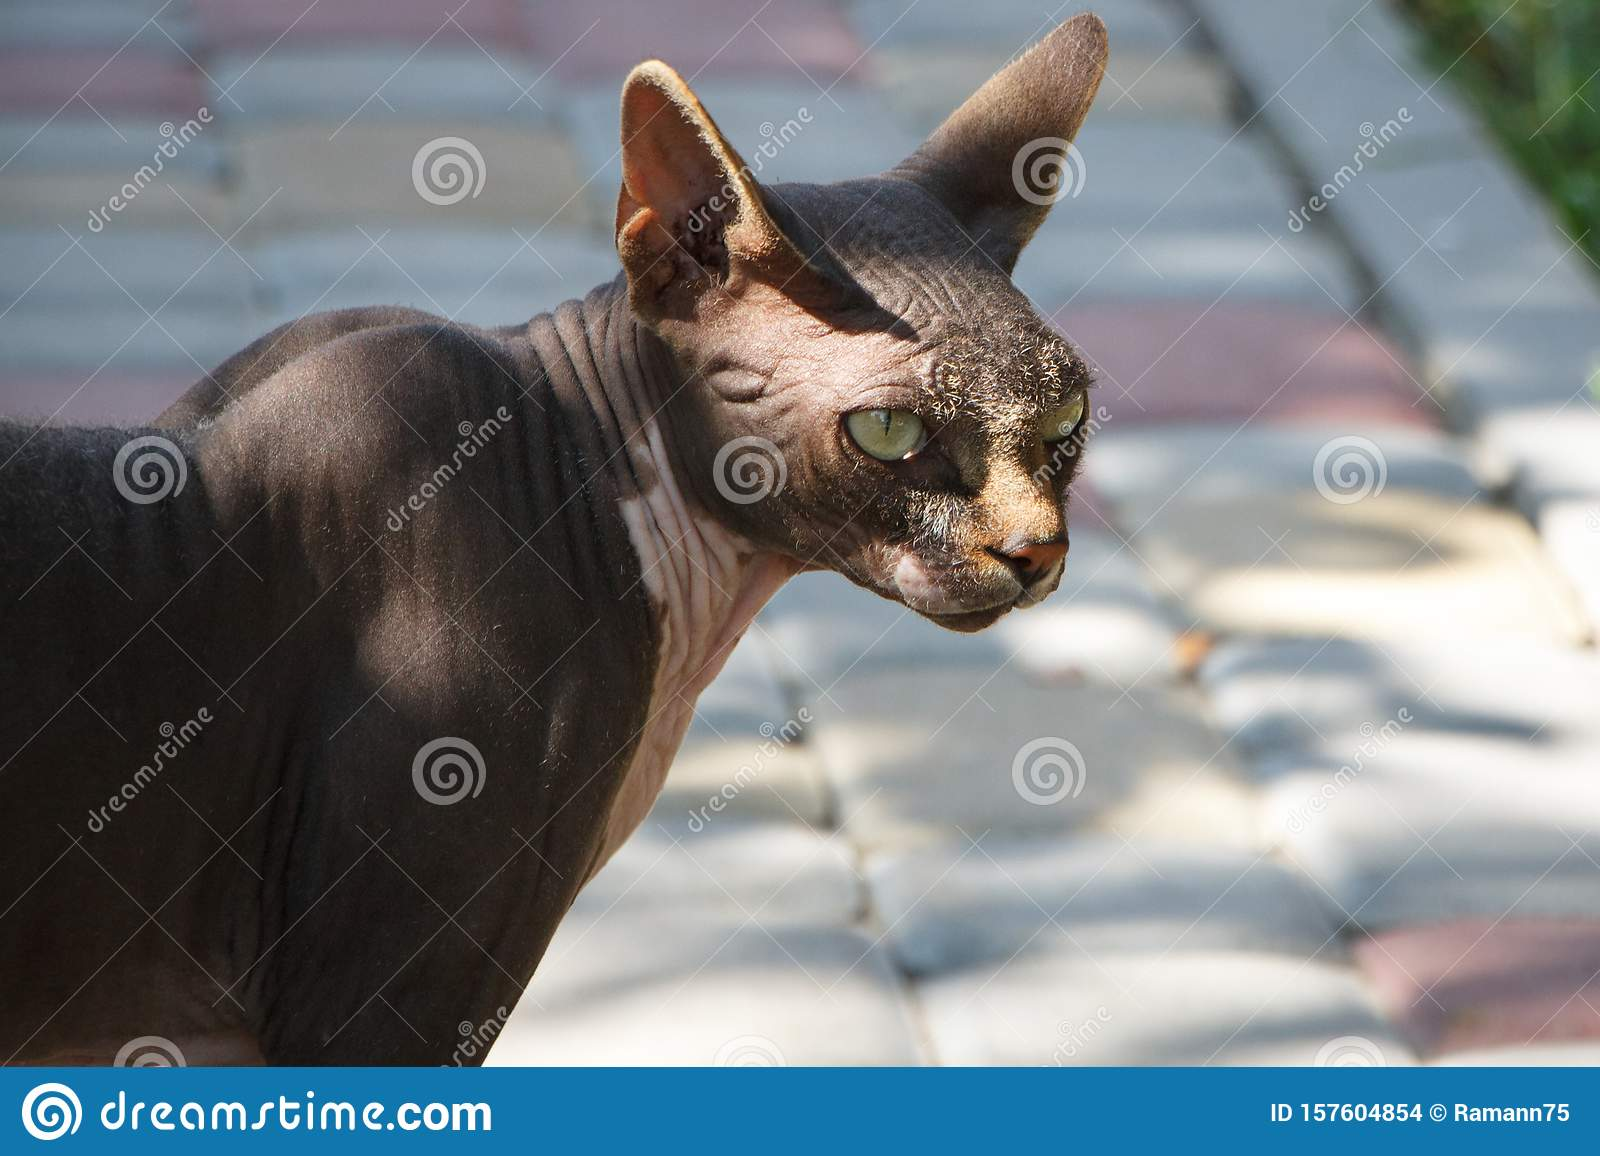 Black wild sphynx cat walks on a walkway in the forest, selective focus